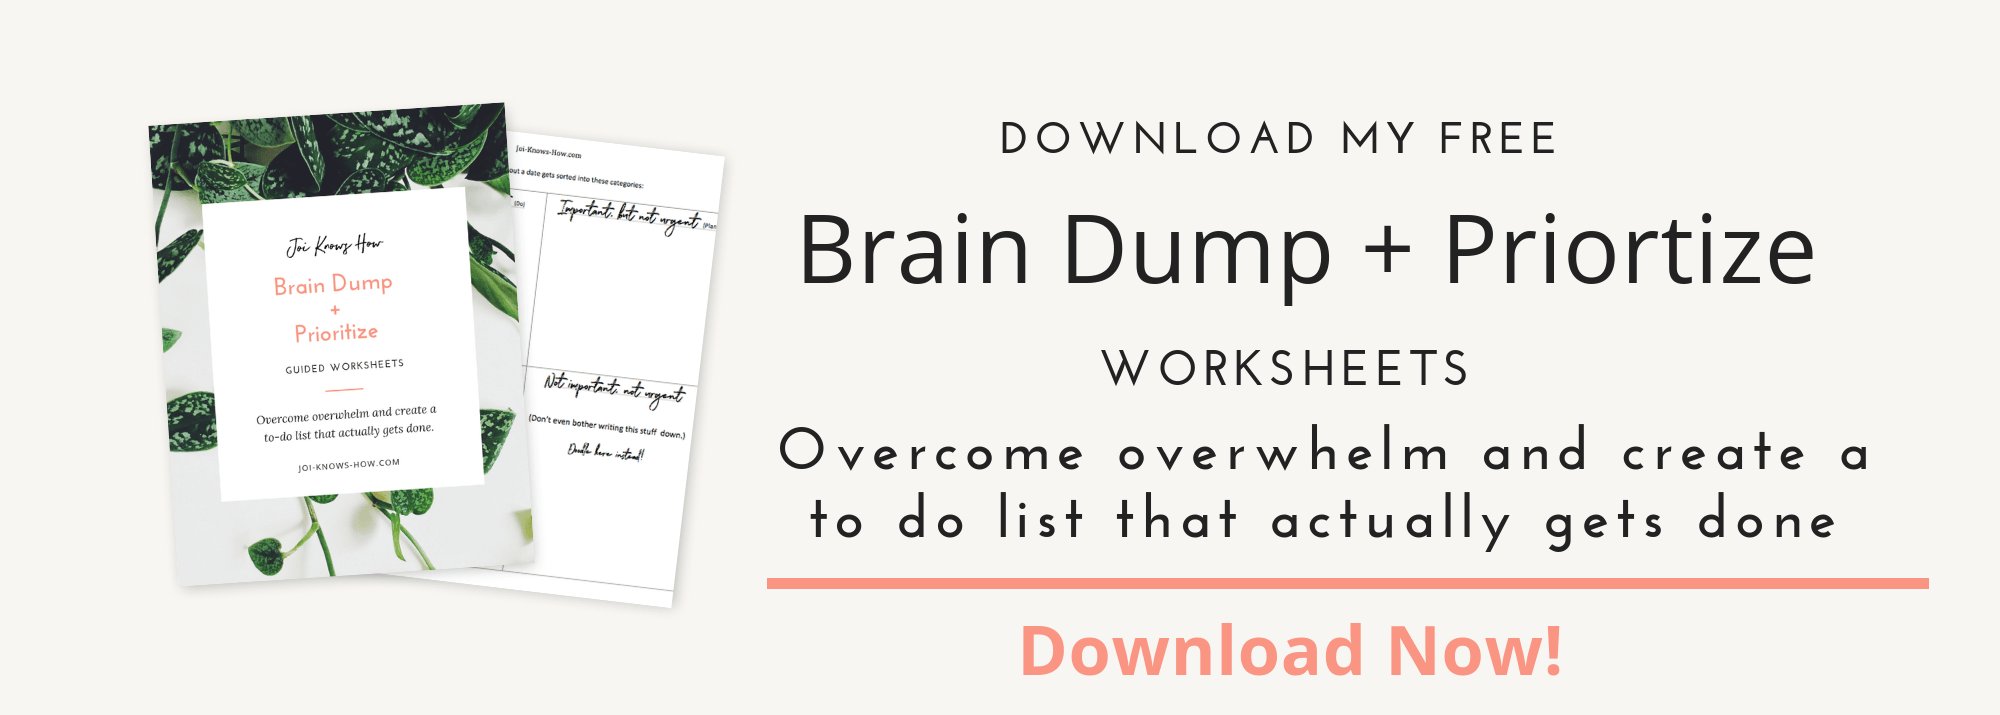 image about Brain Dump Worksheet identified as Multi-Pionate Innovative Joi Is aware How Direct toward